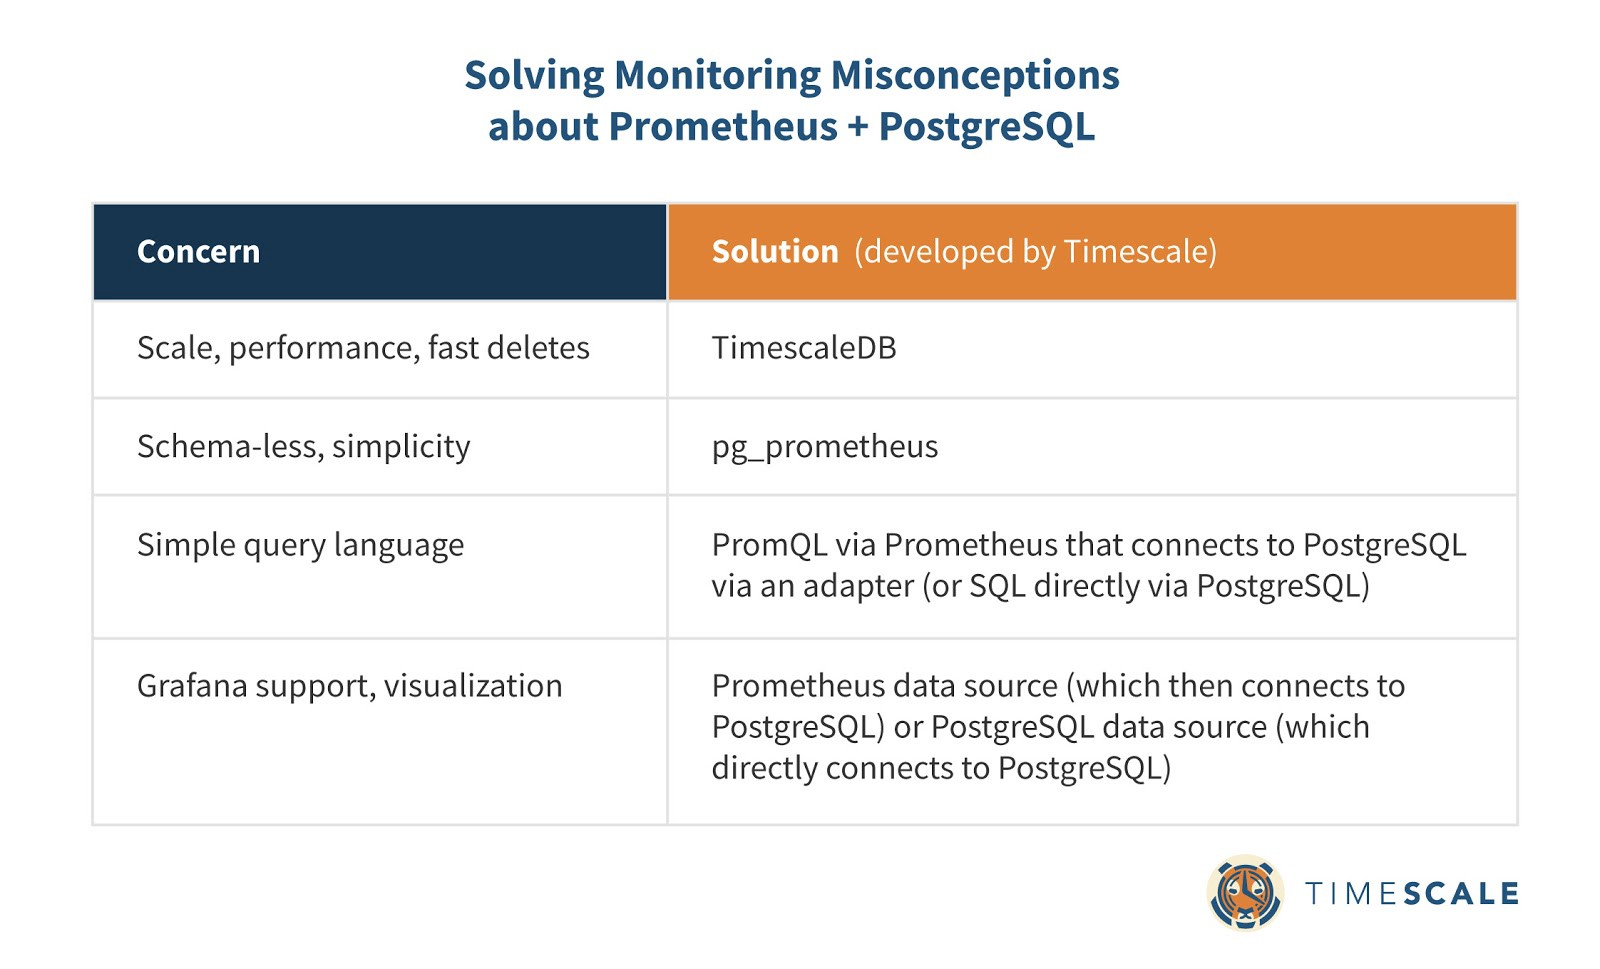 Uniting SQL and NoSQL for monitoring: Why PostgreSQL is the ultimate